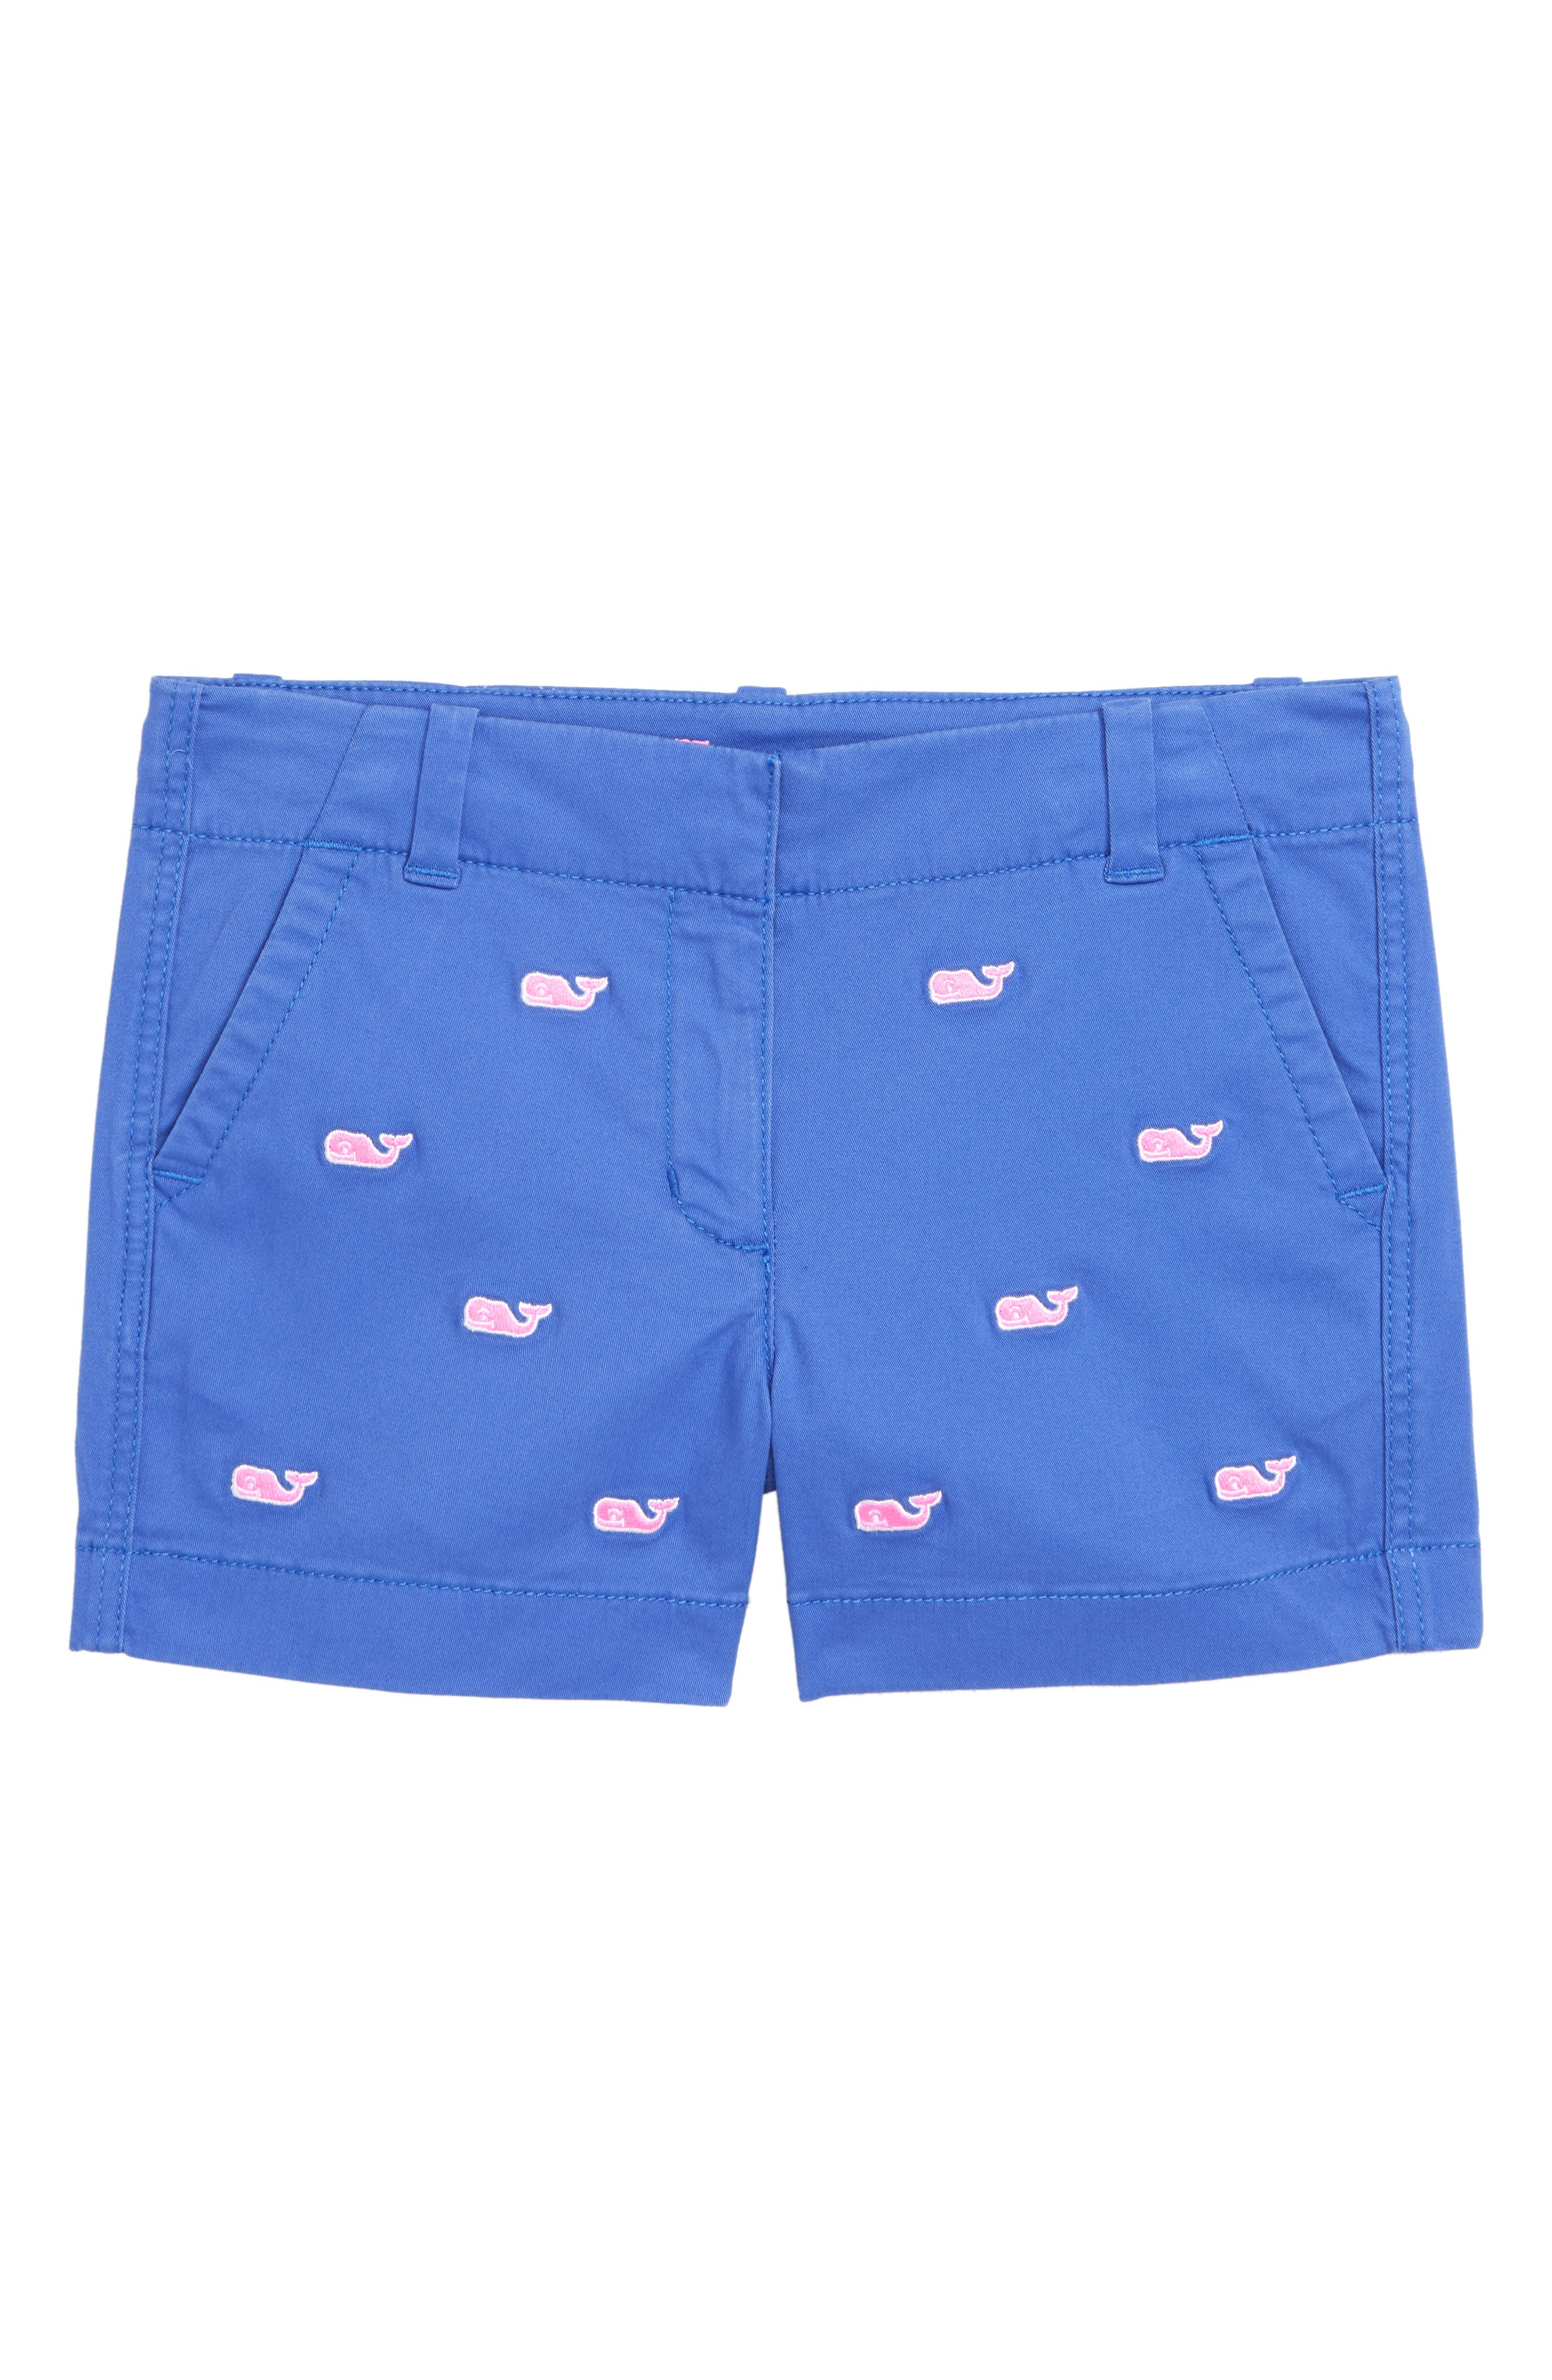 VINEYARD VINES, Whale Embroidered Chino Shorts, Main thumbnail 1, color, 400